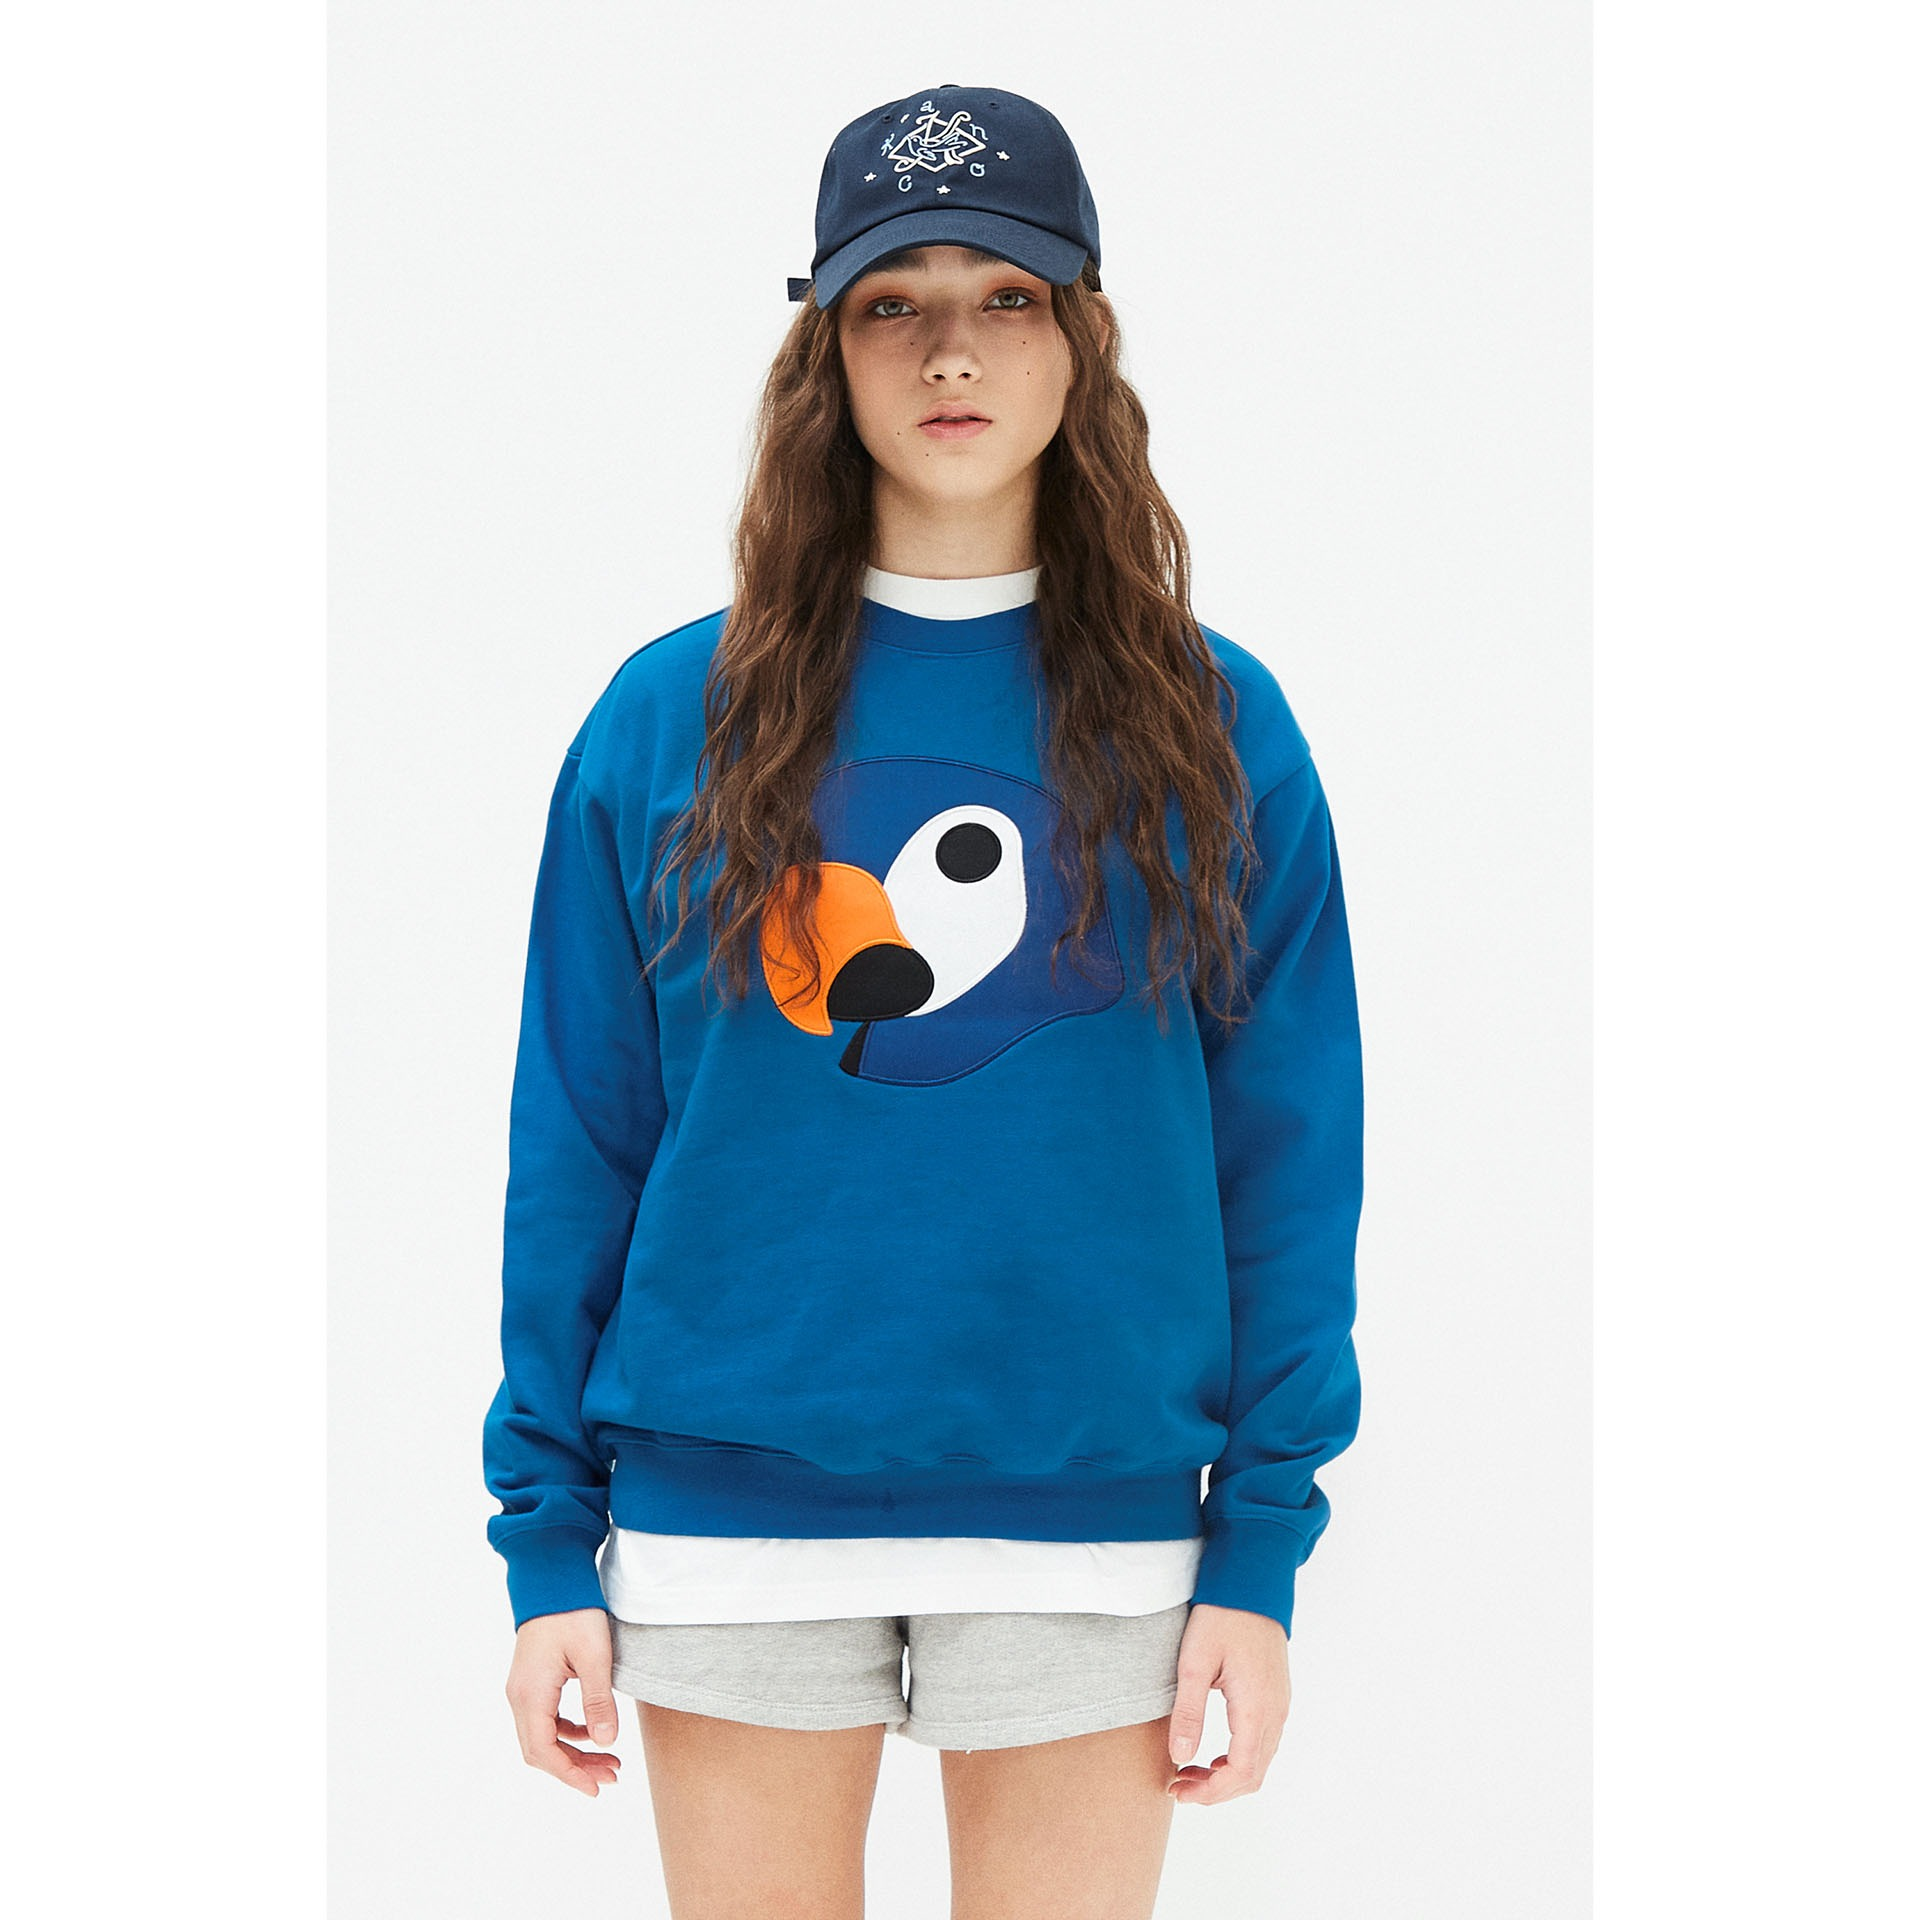 KANCO APPLIQUE SWEATSHIRT blue